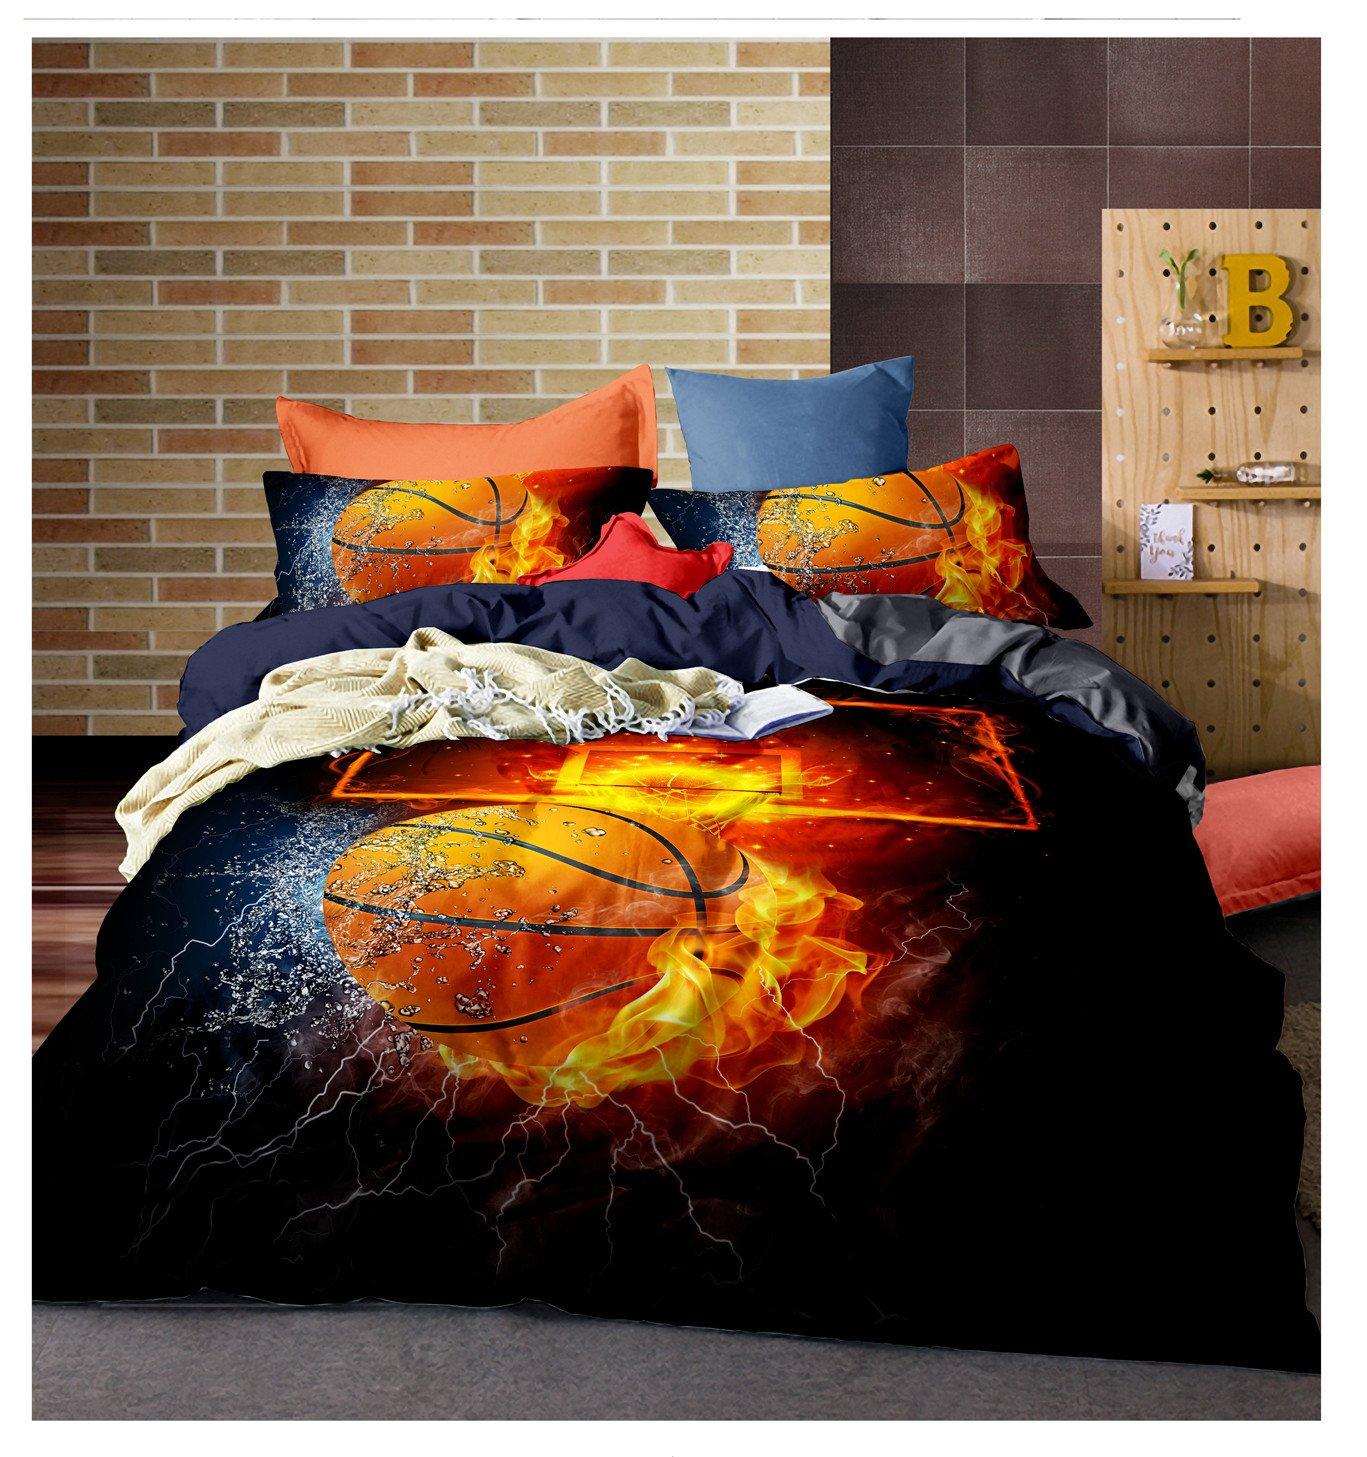 Lldaily 3D Sports Basketball Bedding Set for Teen Boys,Duvet Cover Sets with Pillowcases,Twin Size,2PCS,1 Duvet Cover+1 Pillow Shams,(Comforter not Included)